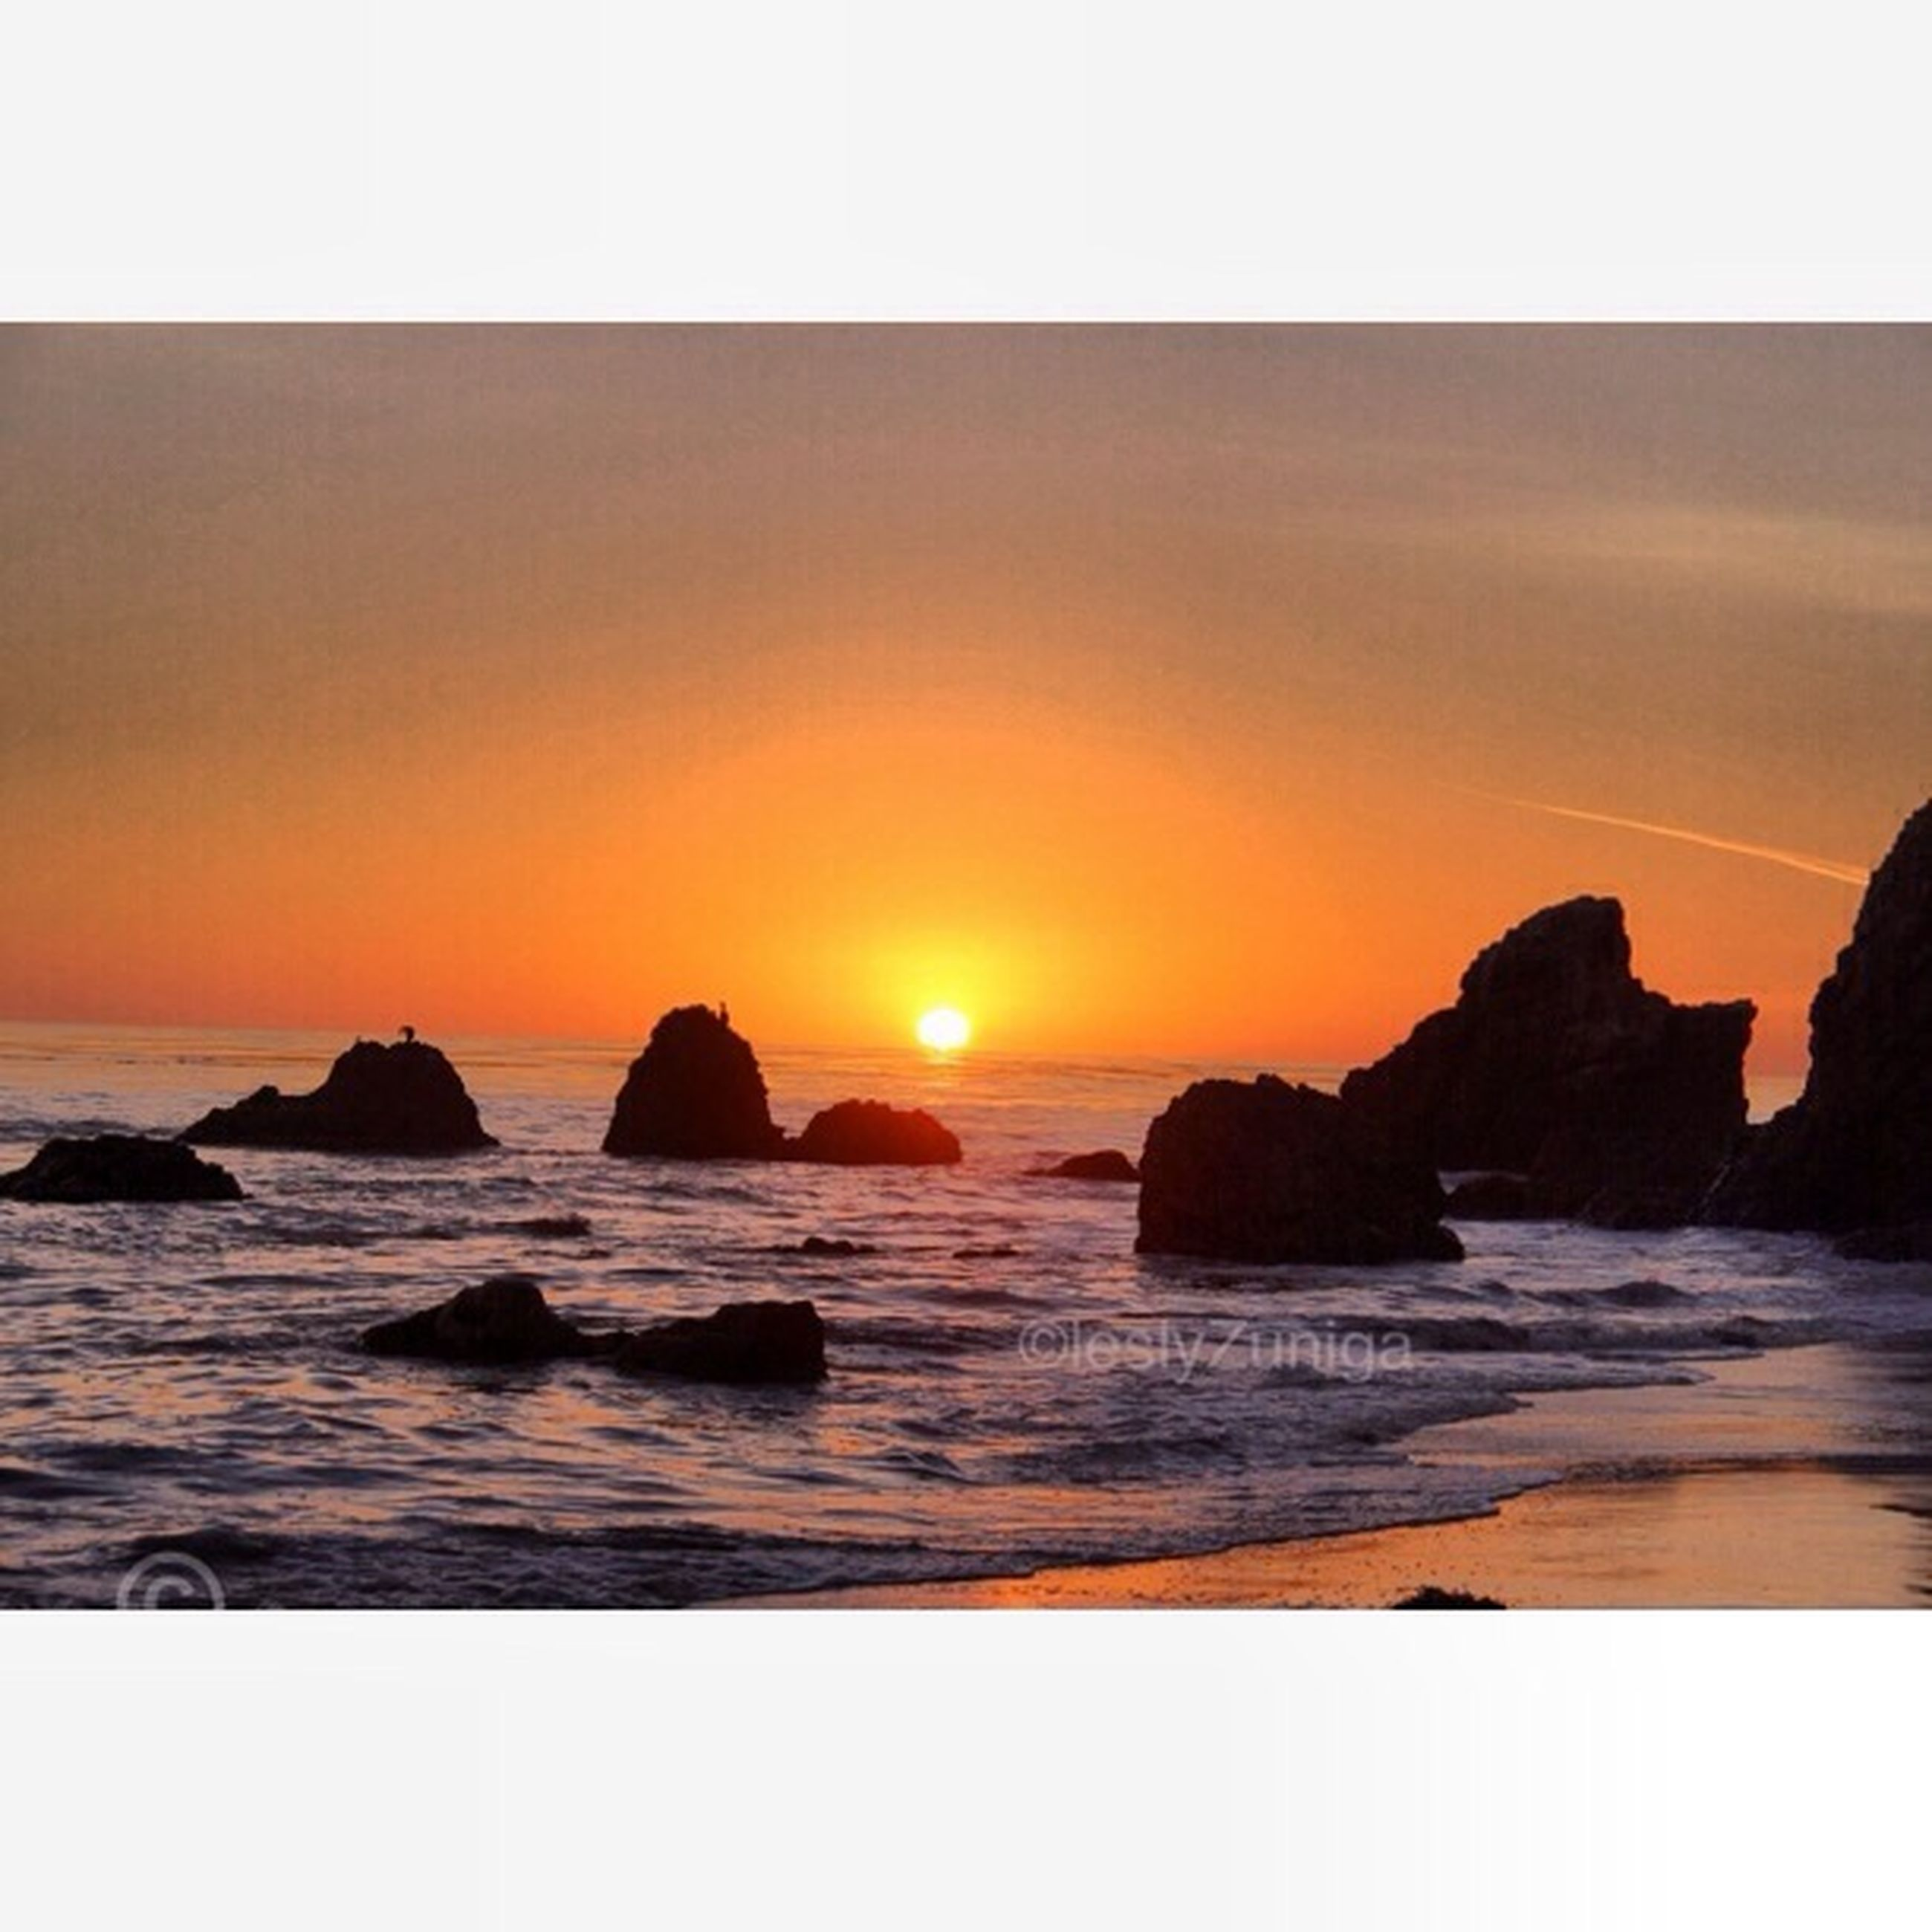 sunset, sea, water, scenics, transfer print, tranquil scene, beauty in nature, sun, horizon over water, tranquility, beach, rock - object, orange color, auto post production filter, shore, nature, idyllic, sky, rock formation, wave